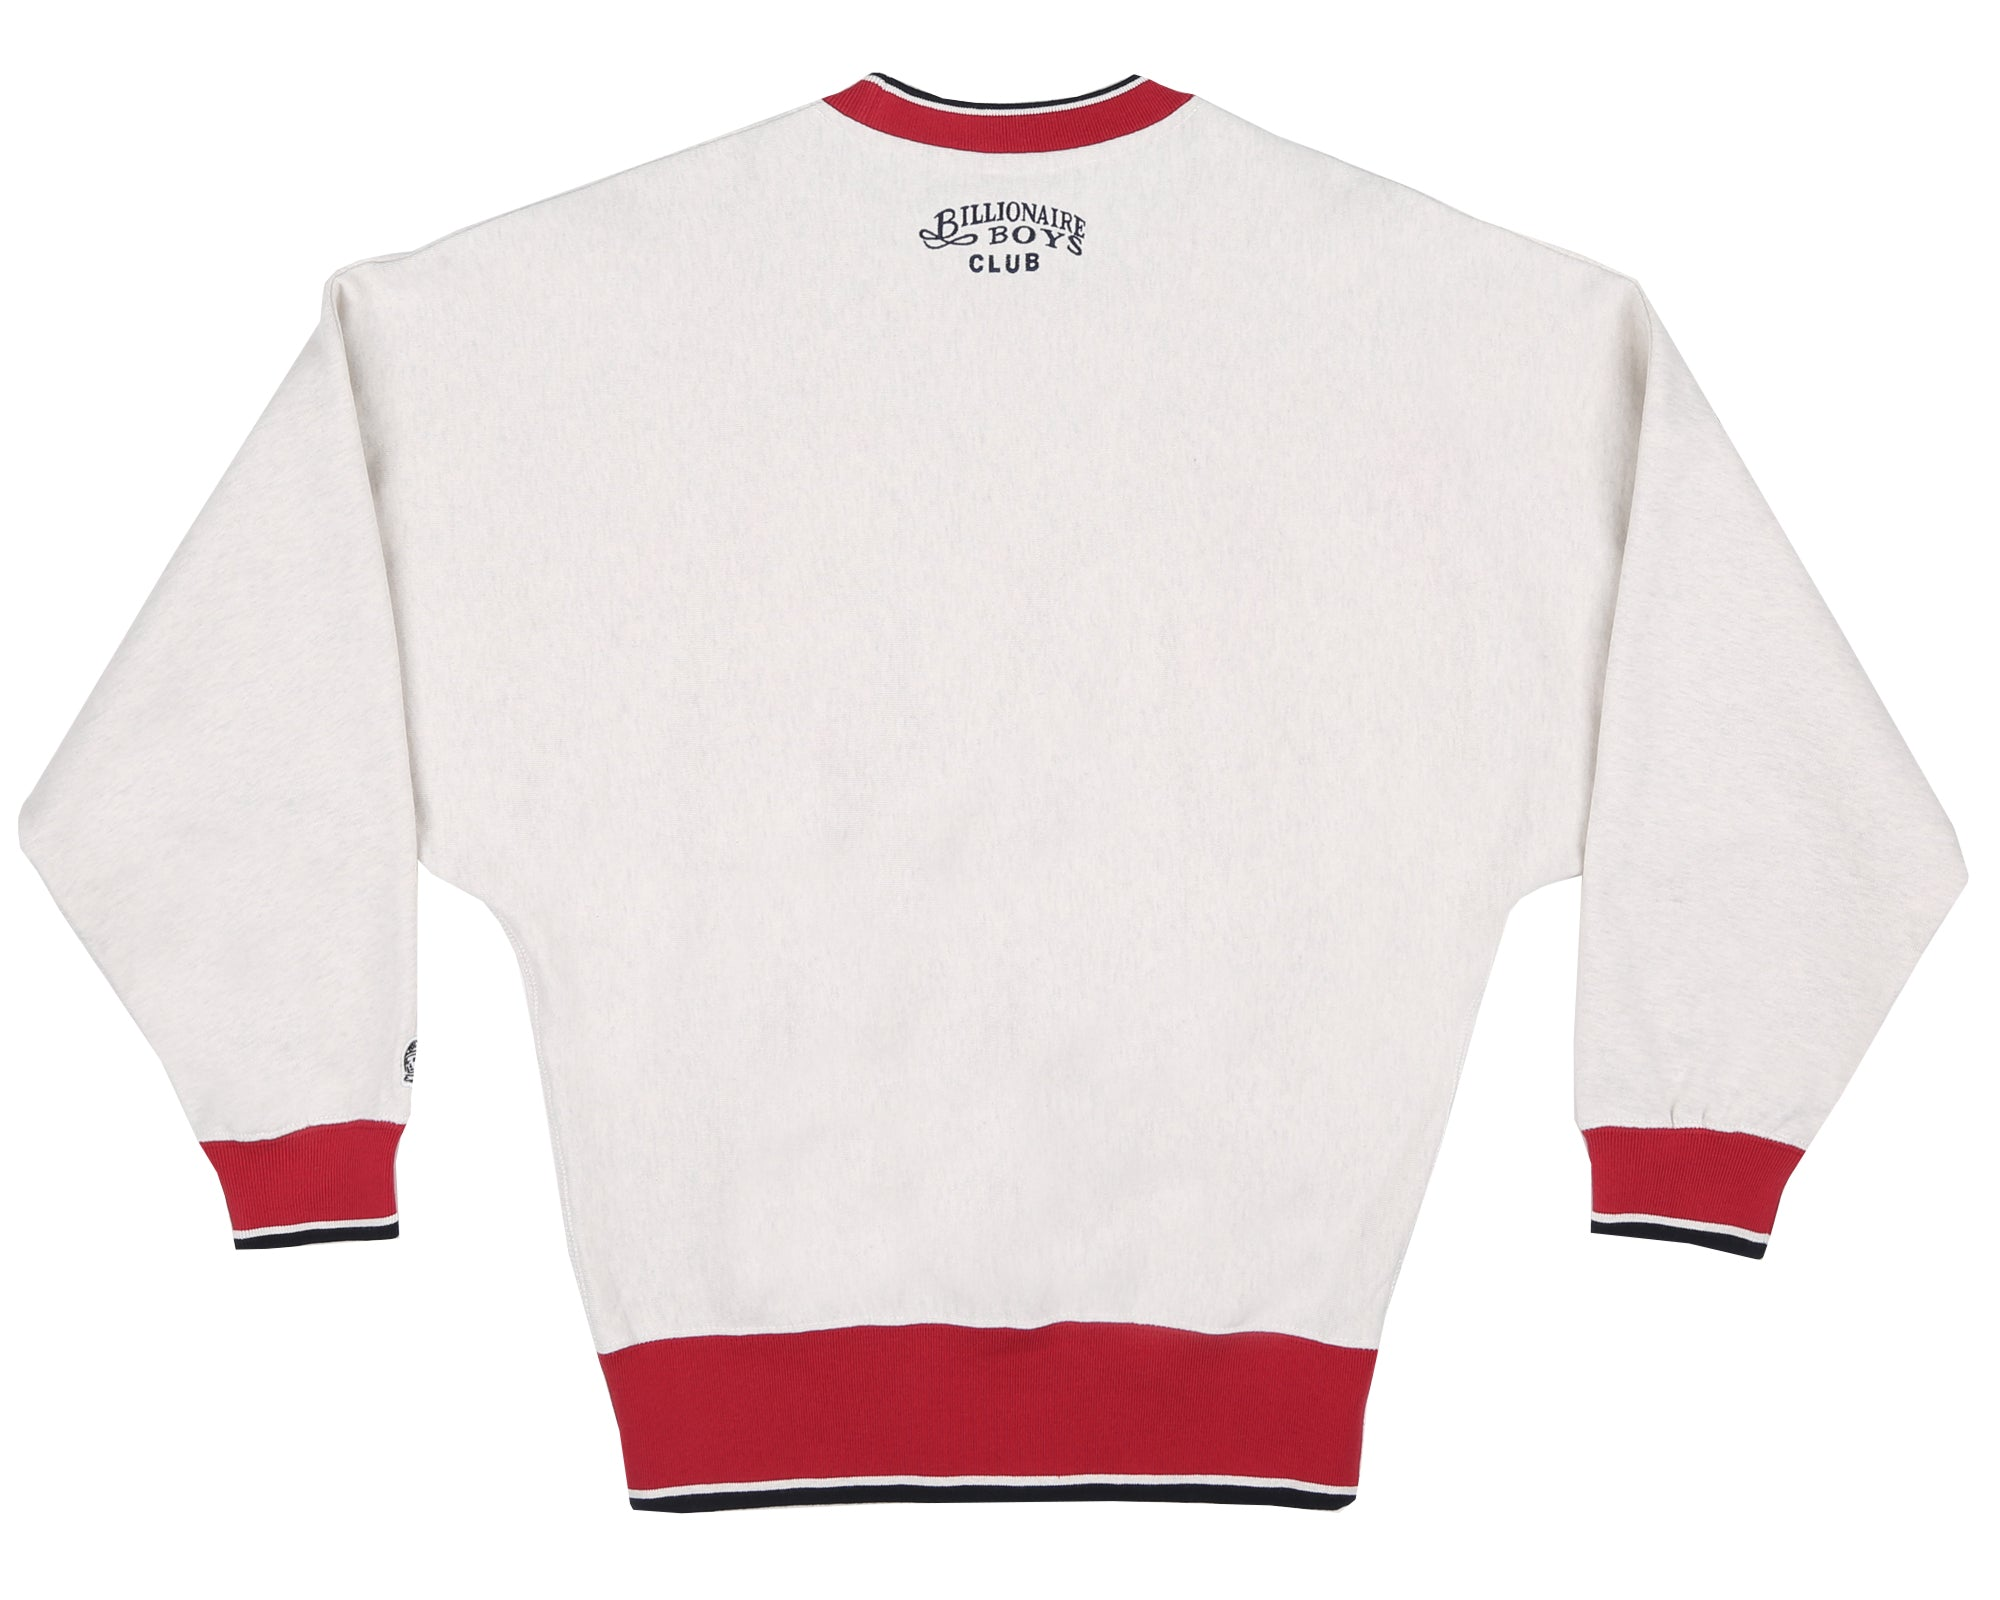 VIKINGS APPLIQUE CREWNECK - WHITE